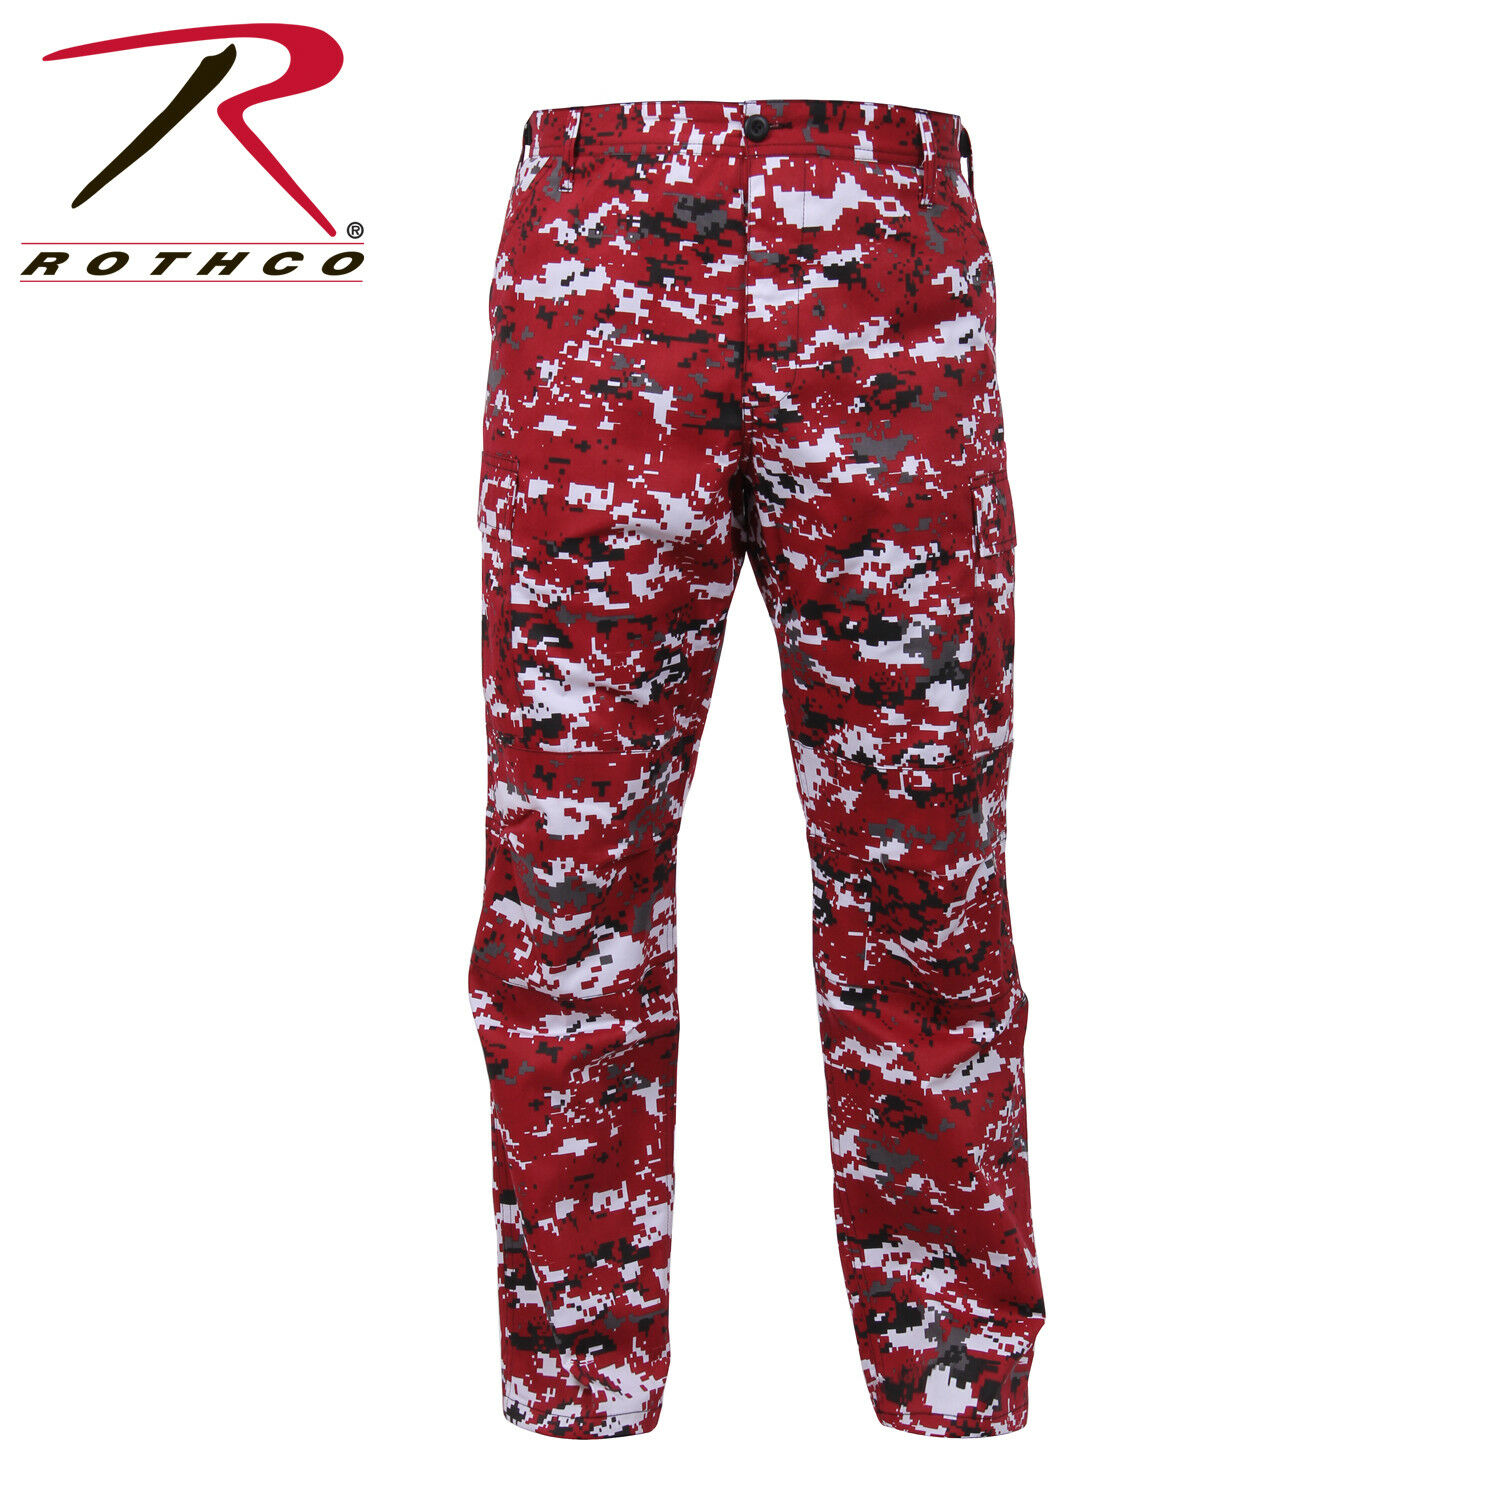 redhco Tactical BDU Pants Red Digital Camo   customers first